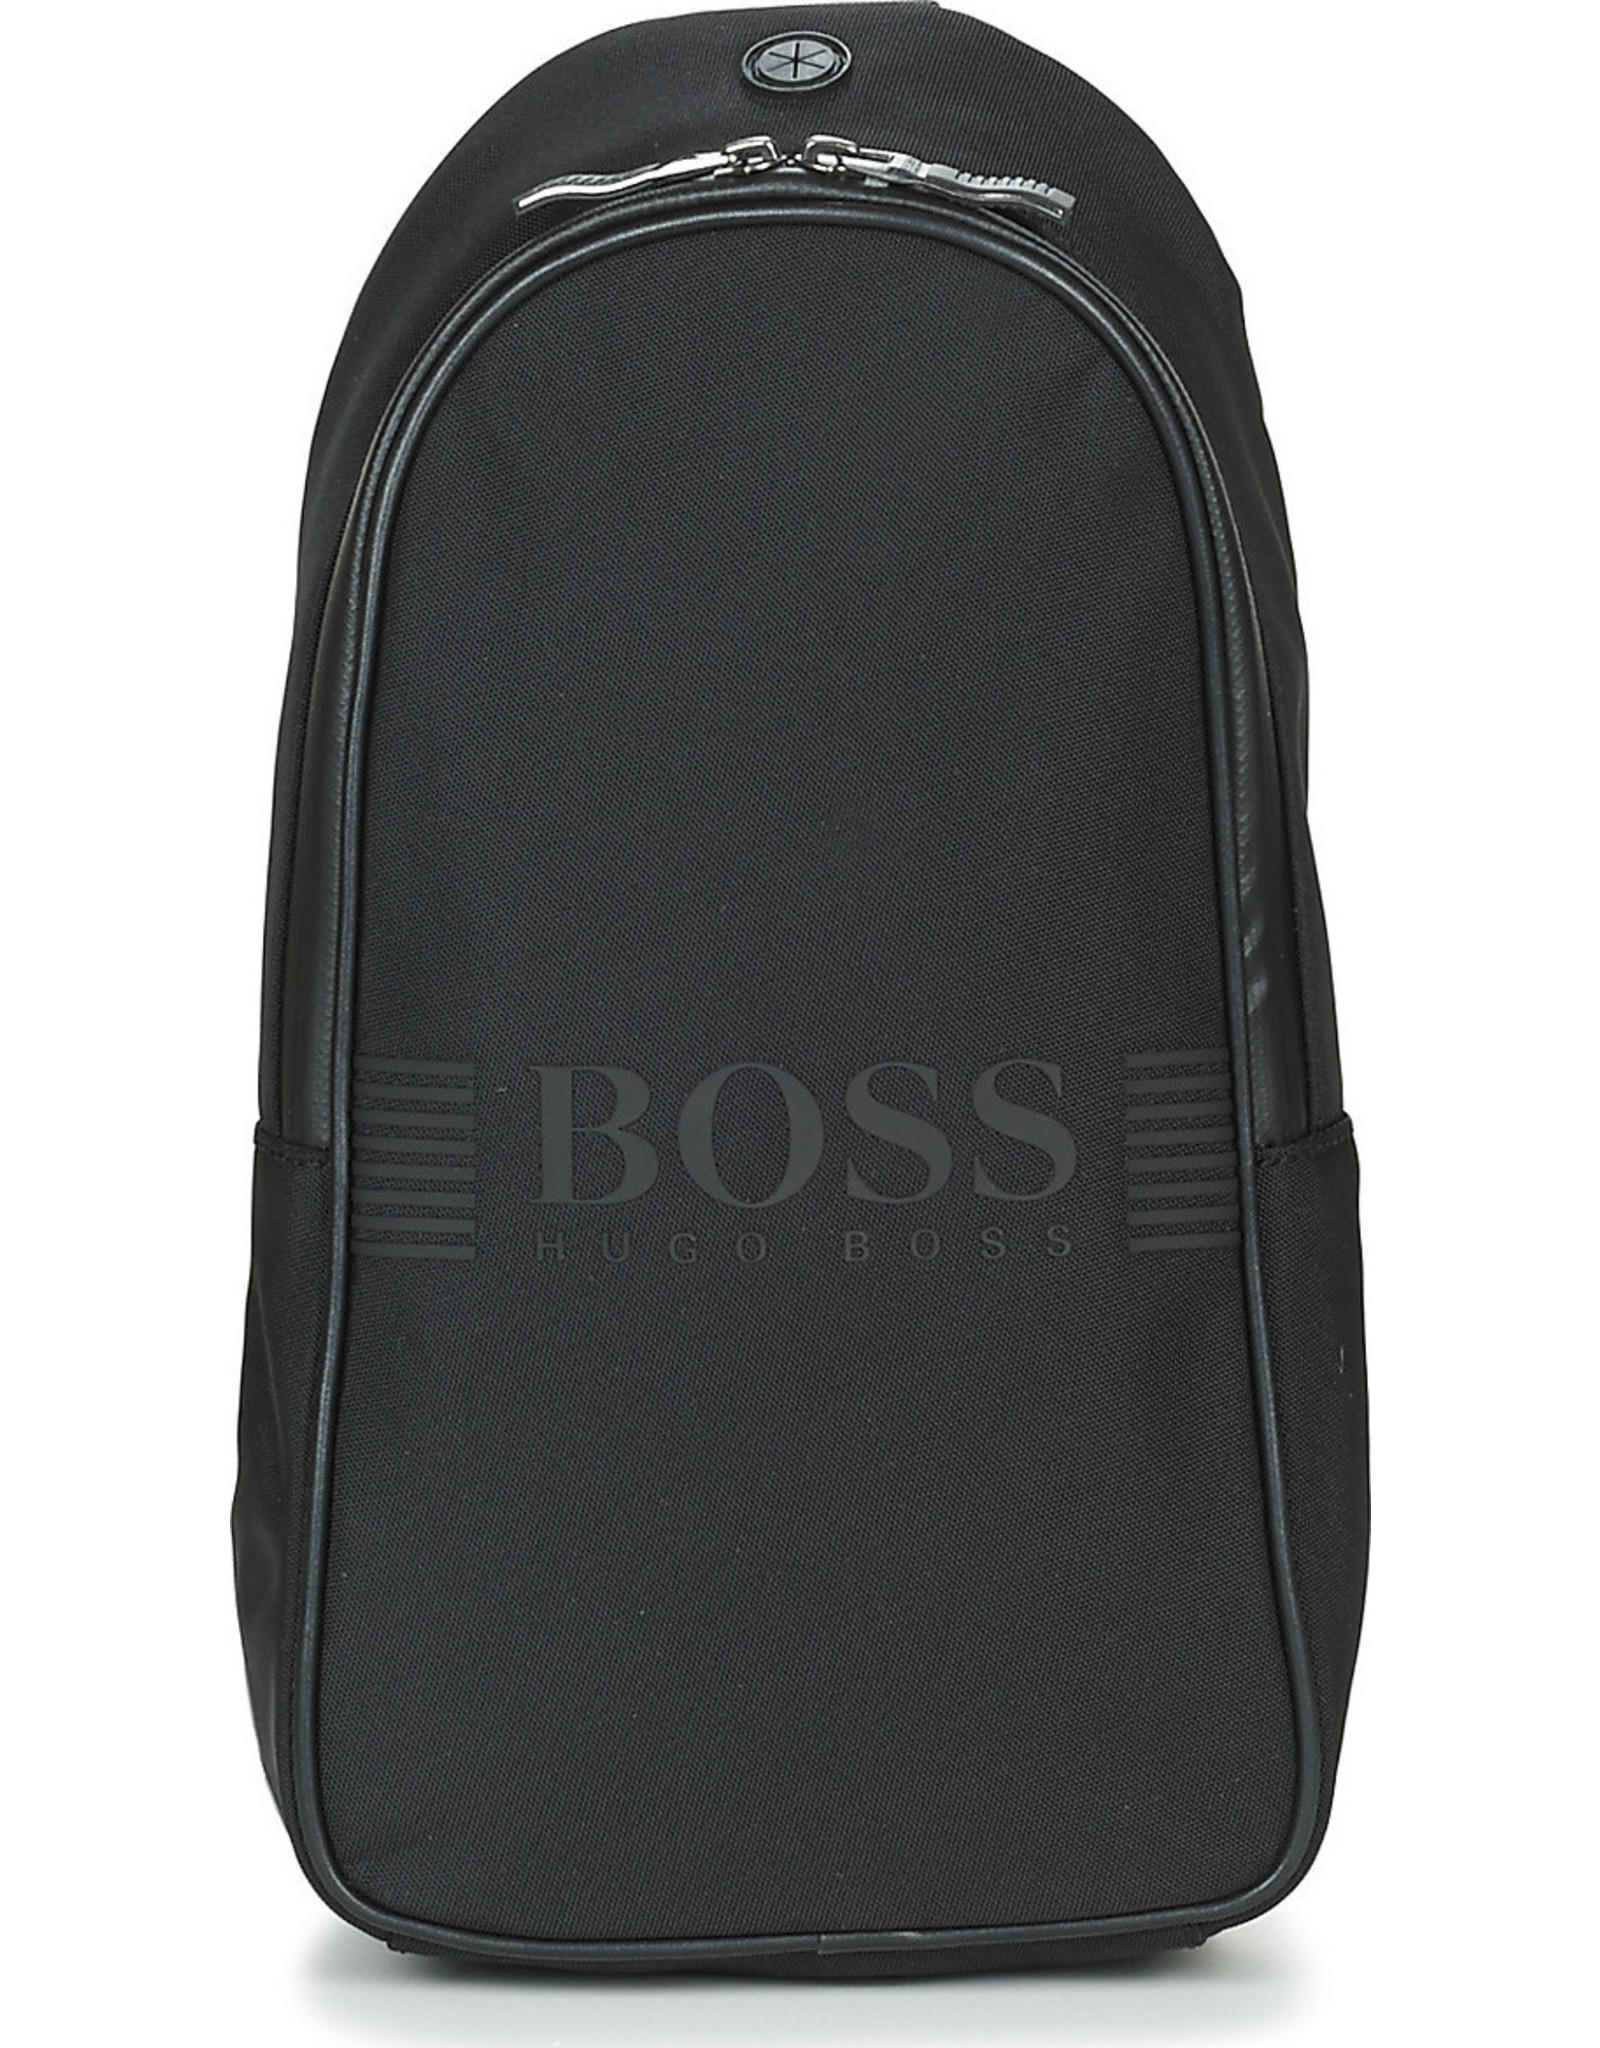 BOSS ATHLEISURE BOSS MINI BACKPACK